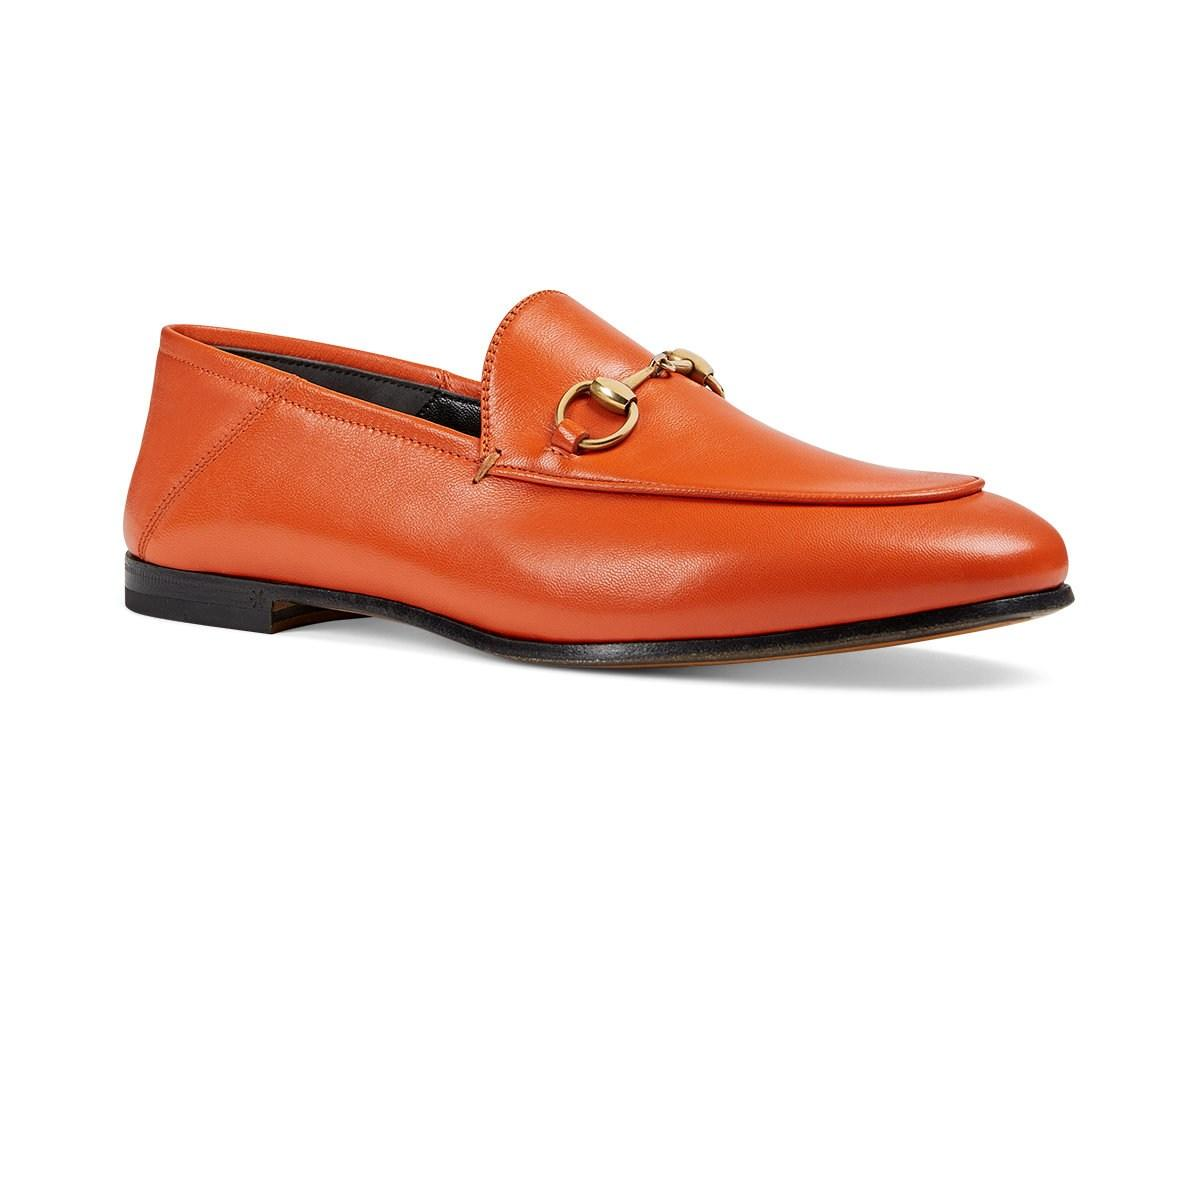 0ac140a1c56 Gucci - Orange Brixton Leather Loafers - Lyst. View fullscreen